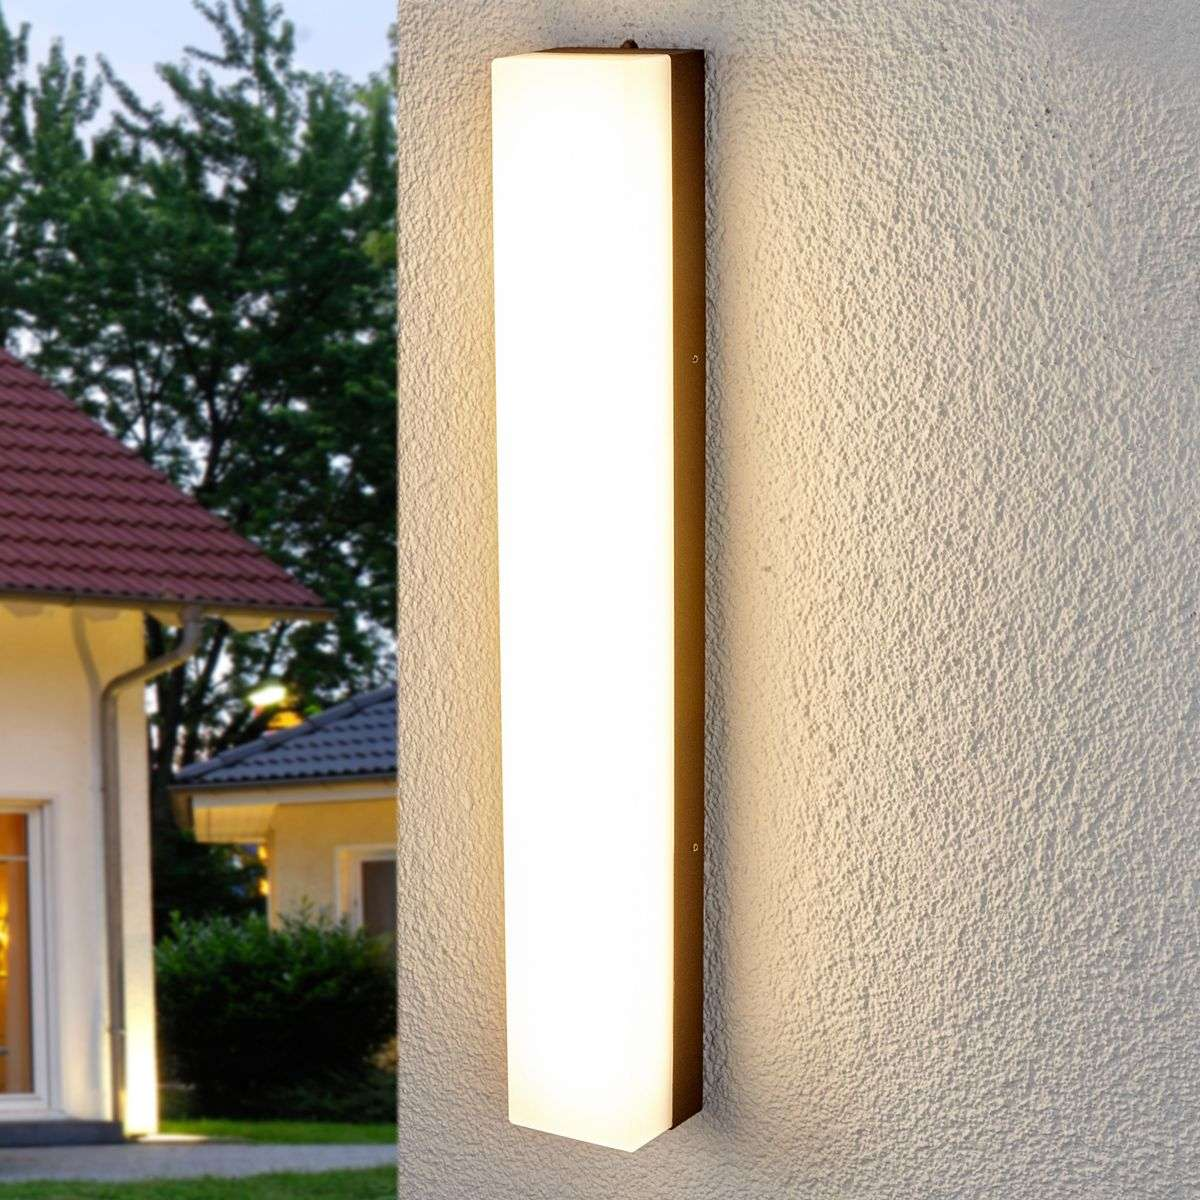 Compra l mpara de pared exterior led muy luminosa cahita for Plafones para pared exterior